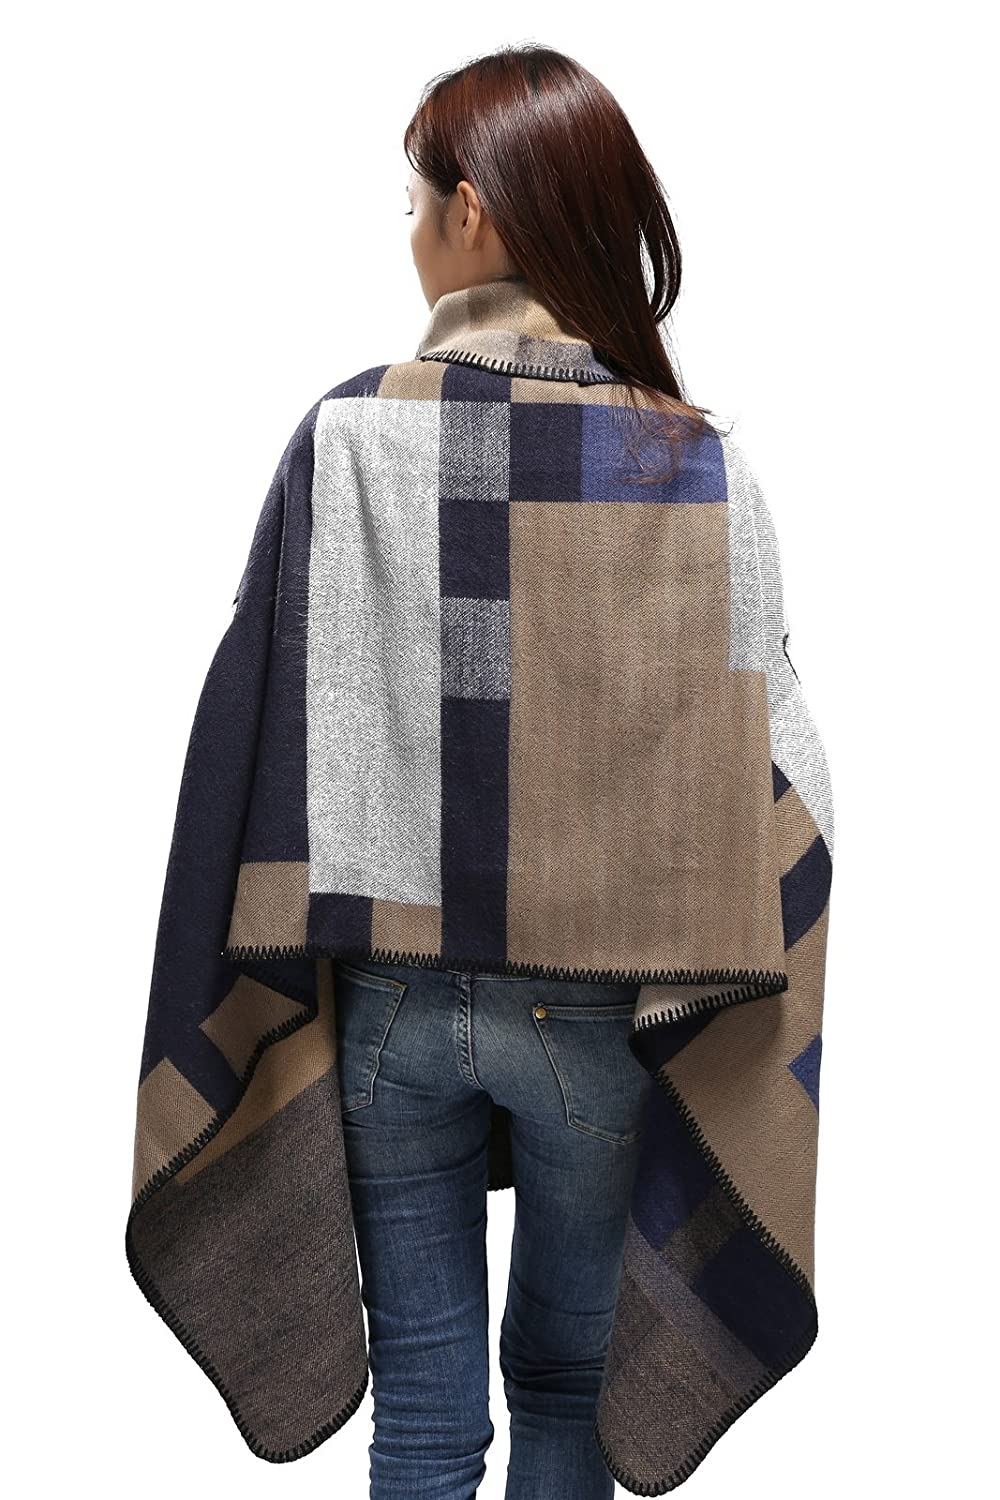 Women Poncho Scarf Shawl Office Wrap Christmas for Wife Girl Gift Pashmina Cape